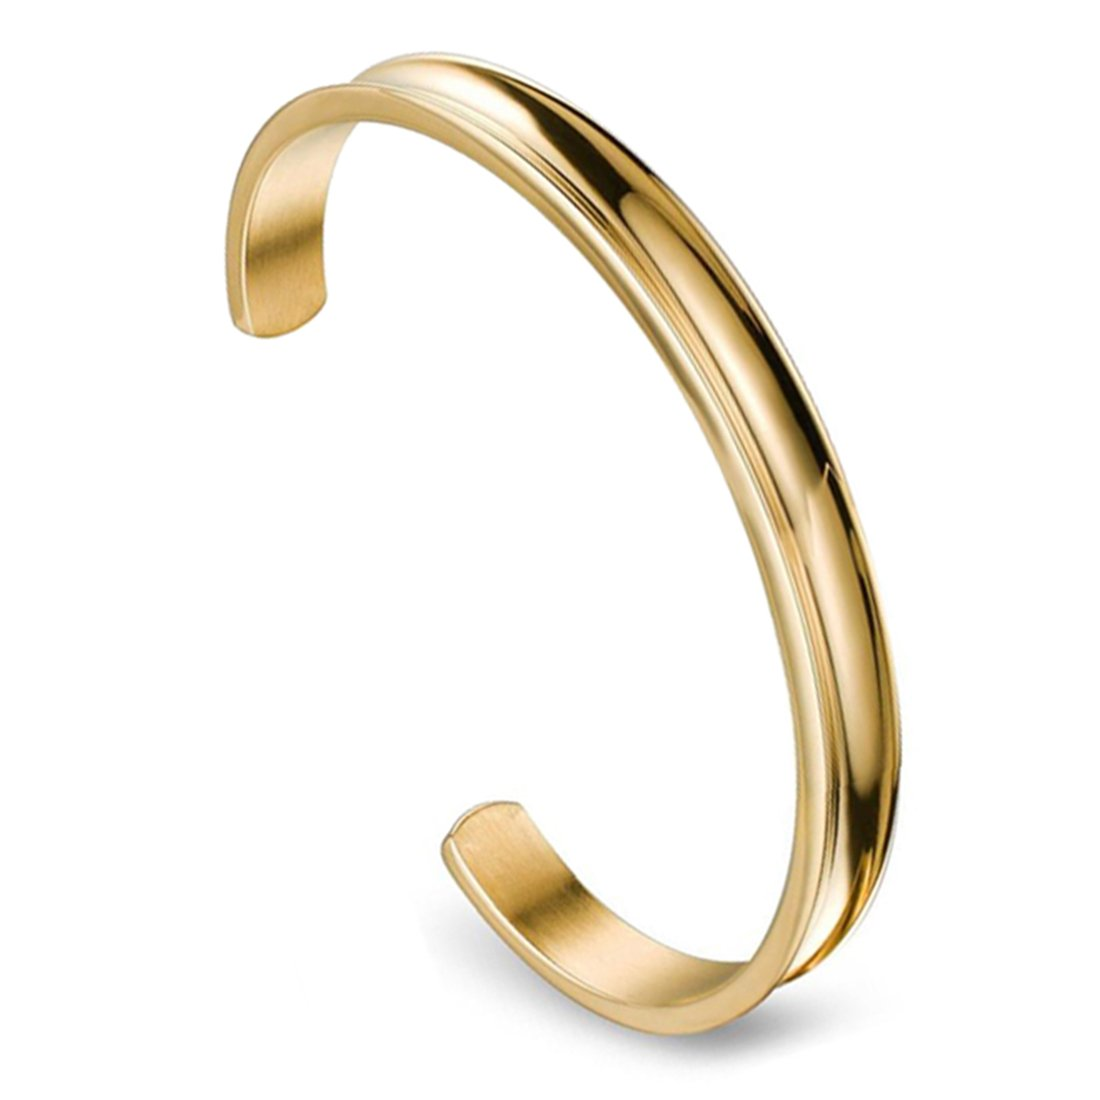 ZUOBAO 6mm Stainless Steel Hair Tie Bracelet Grooved Cuff Bangle for Women Girls (Gold) Zuo Bao CA-SHZ0